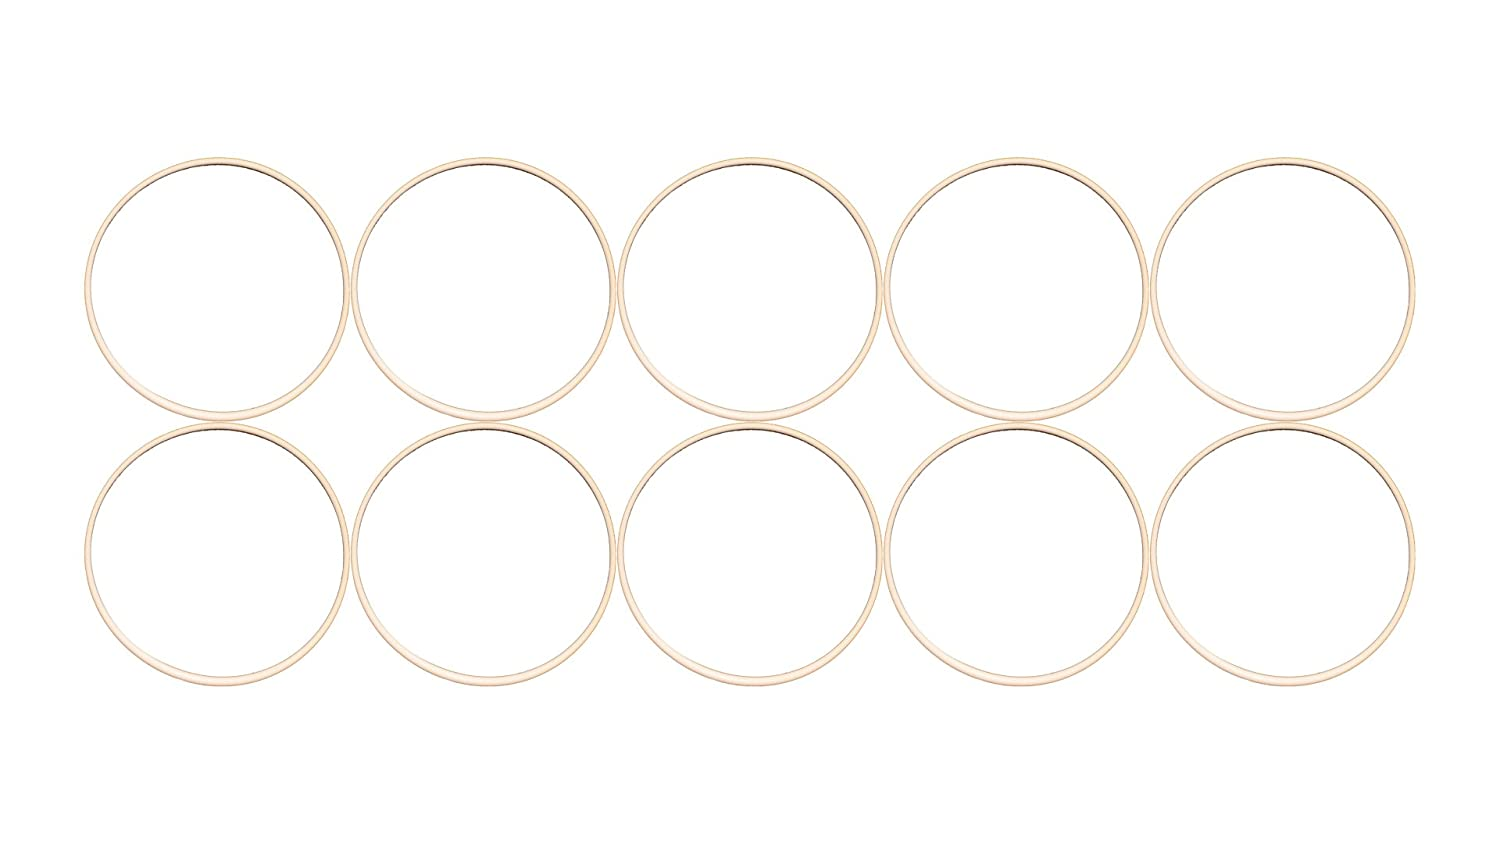 11-3//4 OD Pack of 10 11-1//2 ID 11-3//4 OD 11-1//2 ID Outstanding Weather Resistance Sur-Seal Pack of 10 Sterling Seal ORTFE277x10 Number-277 Standard Teflon O-Ring Polytetrafluoro-Ethylene